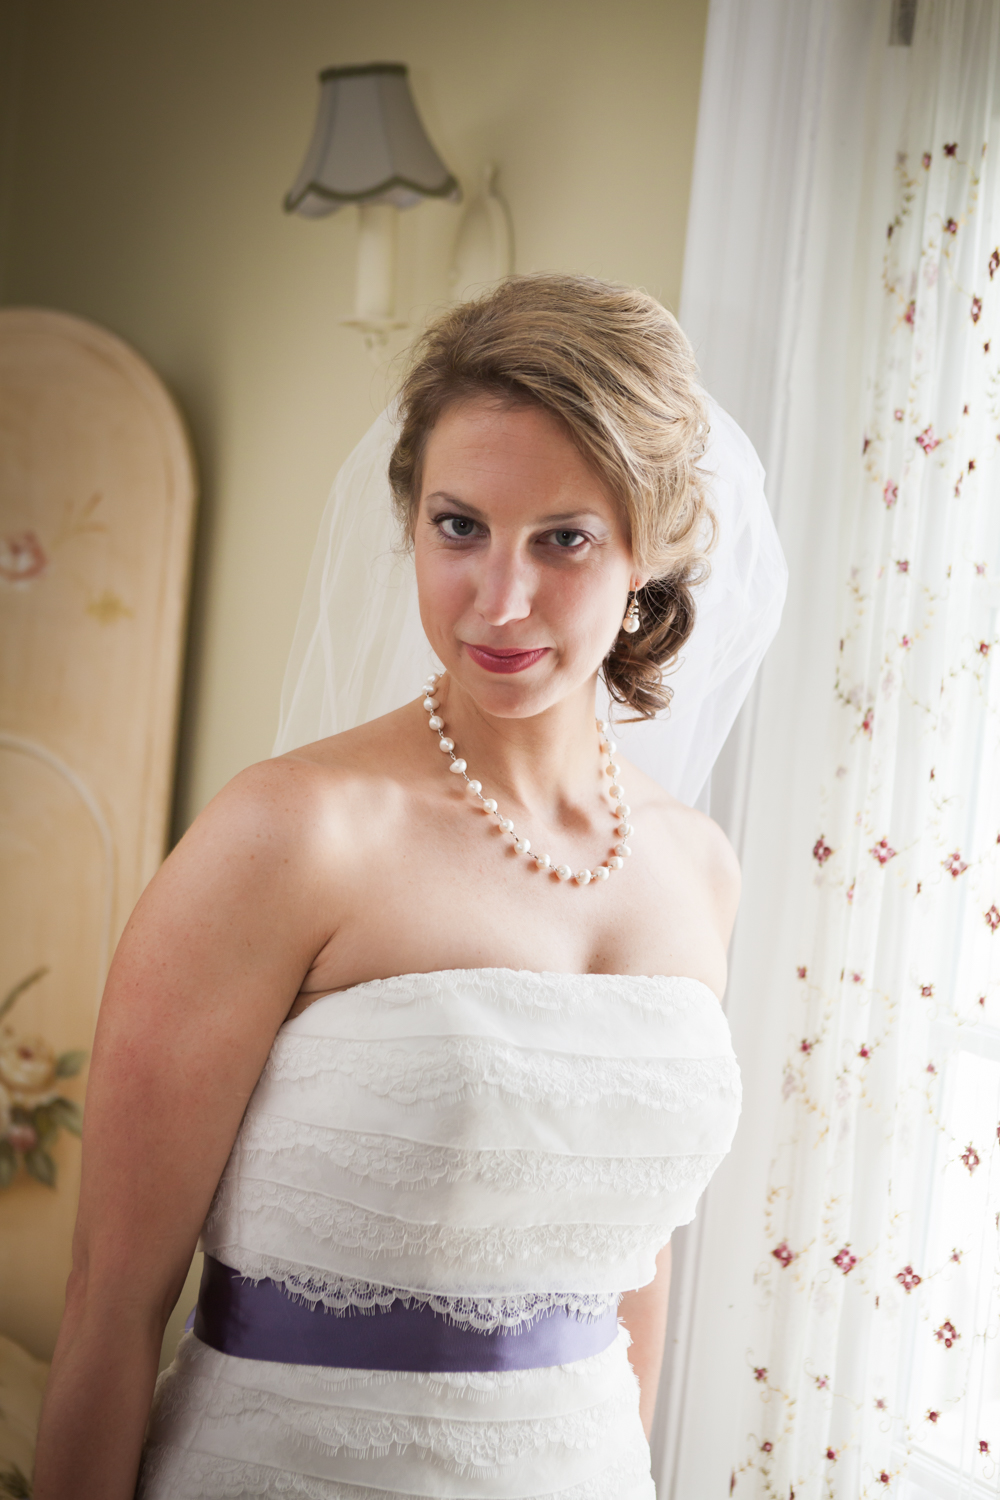 Portrait of bride with veil at a Davenport Mansion wedding